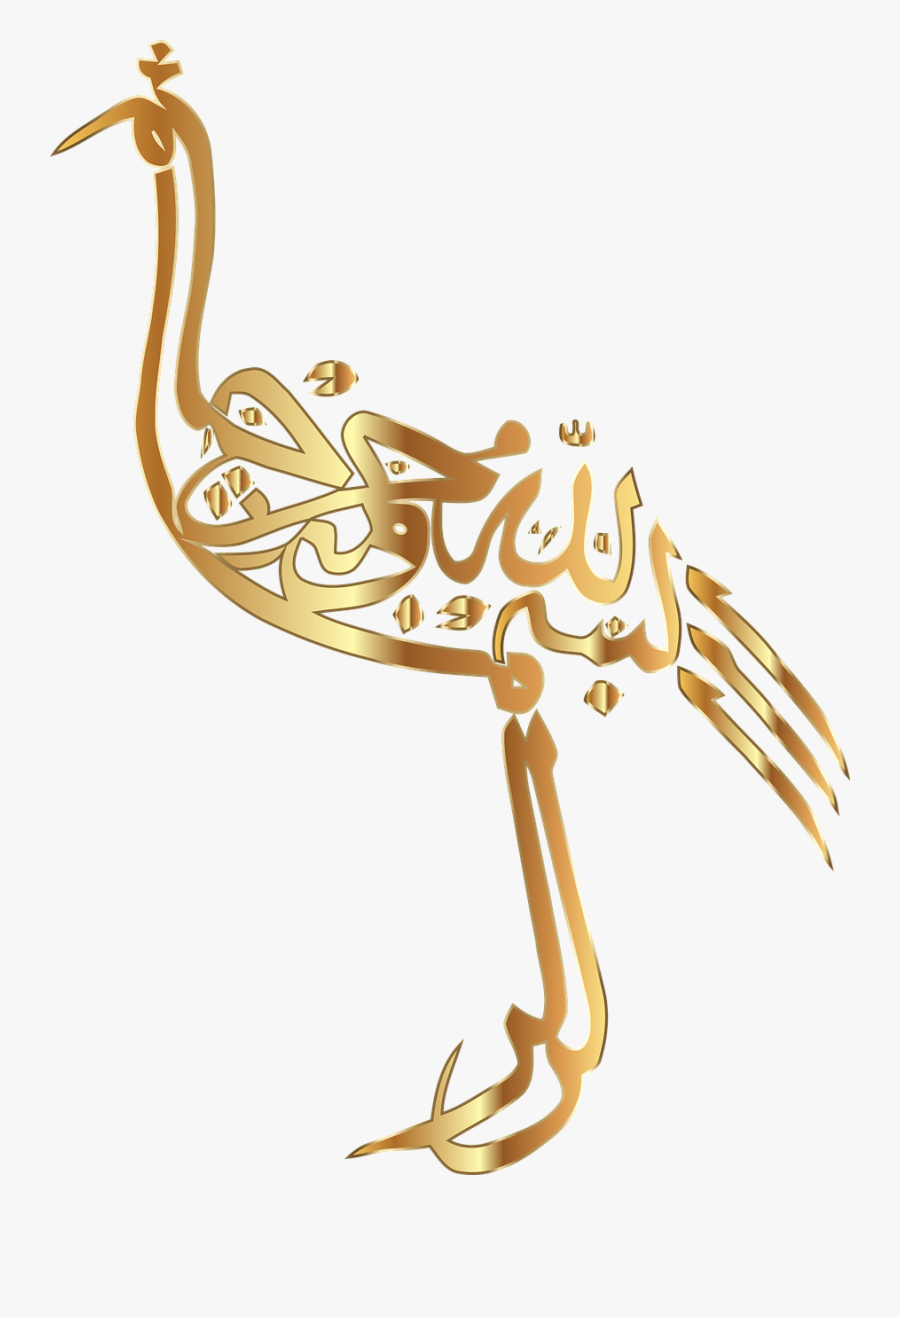 Arabic Calligraphy Png, Transparent Clipart